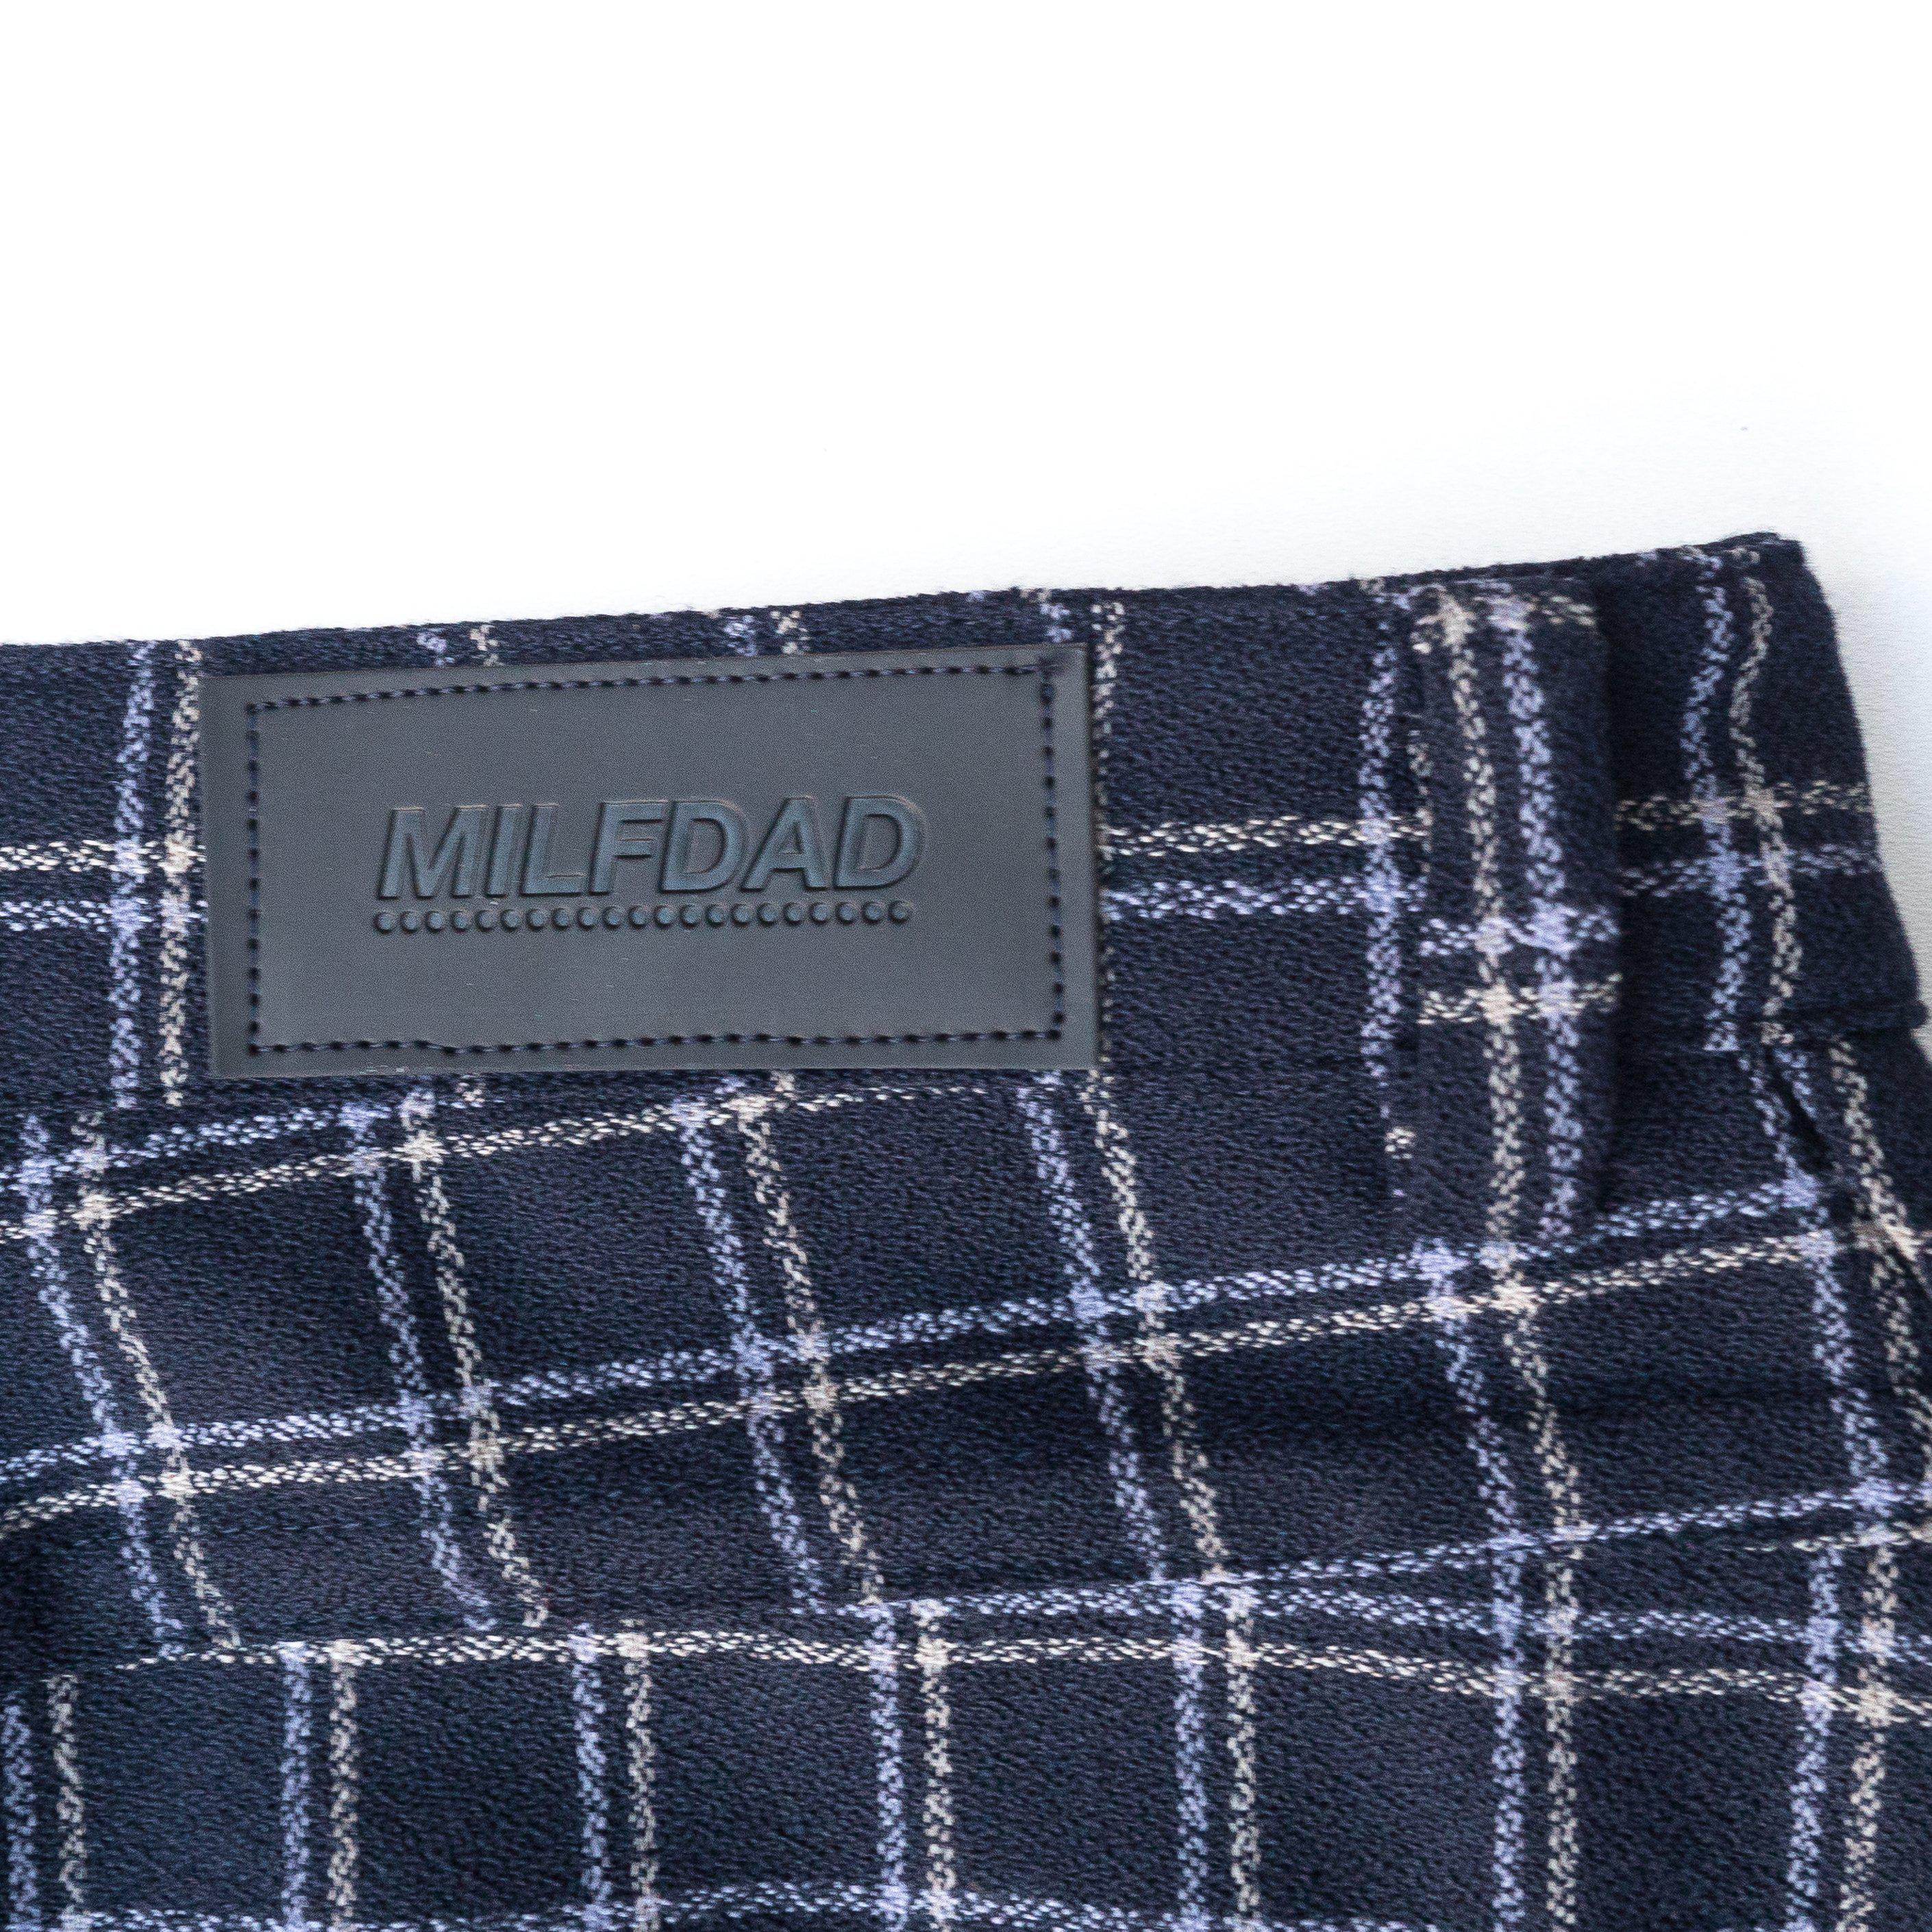 PLEATED CUFF TROUSER - BLUE/CHECK-MILFDAD